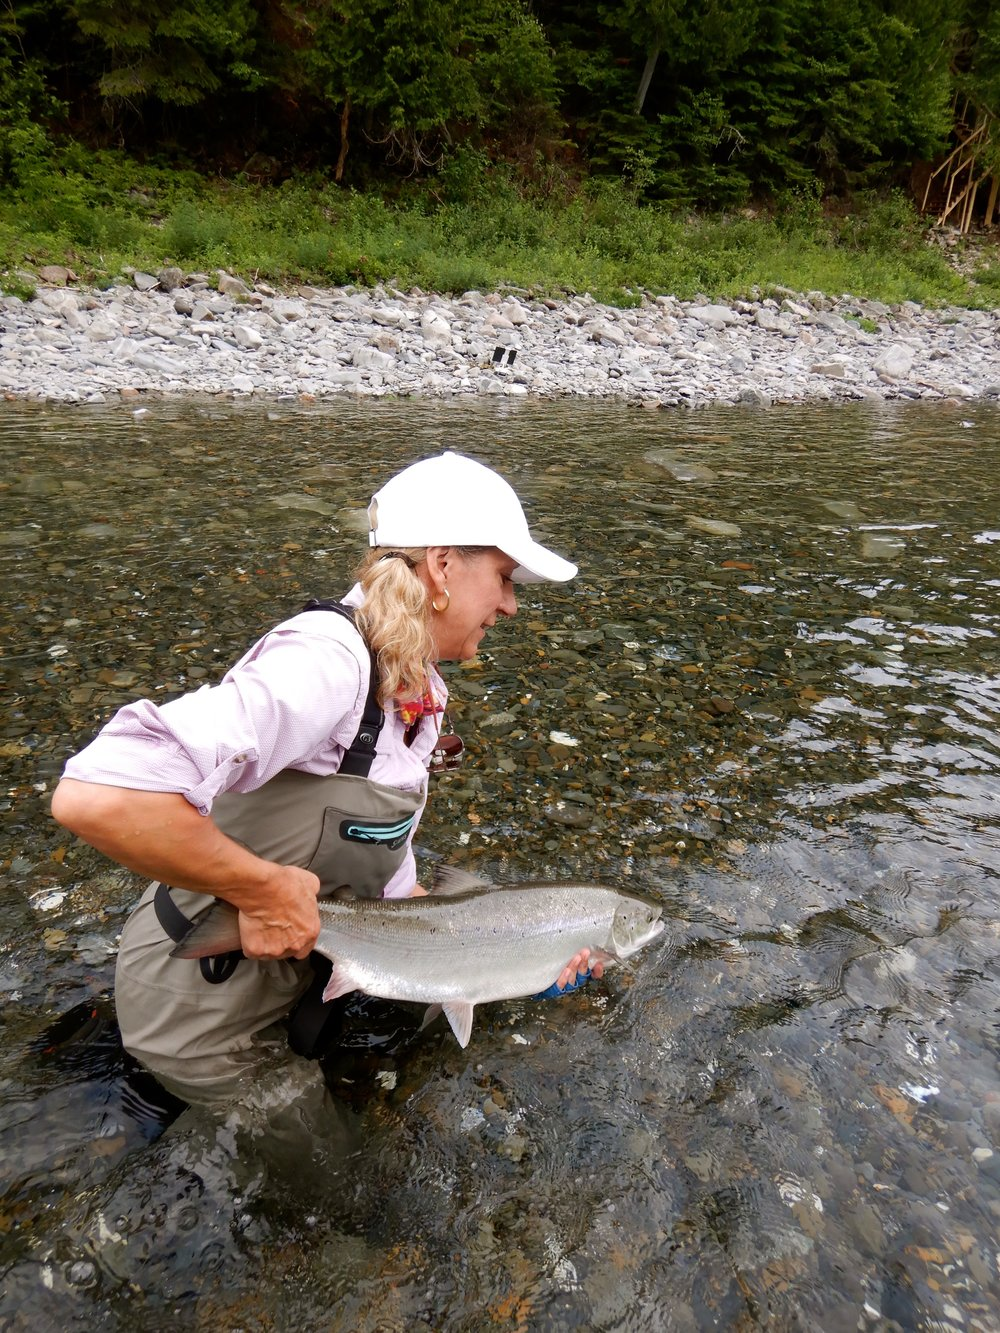 Lynda shields landed this fine salmon on the Bonaventure on her first day out,  well done Lynda!